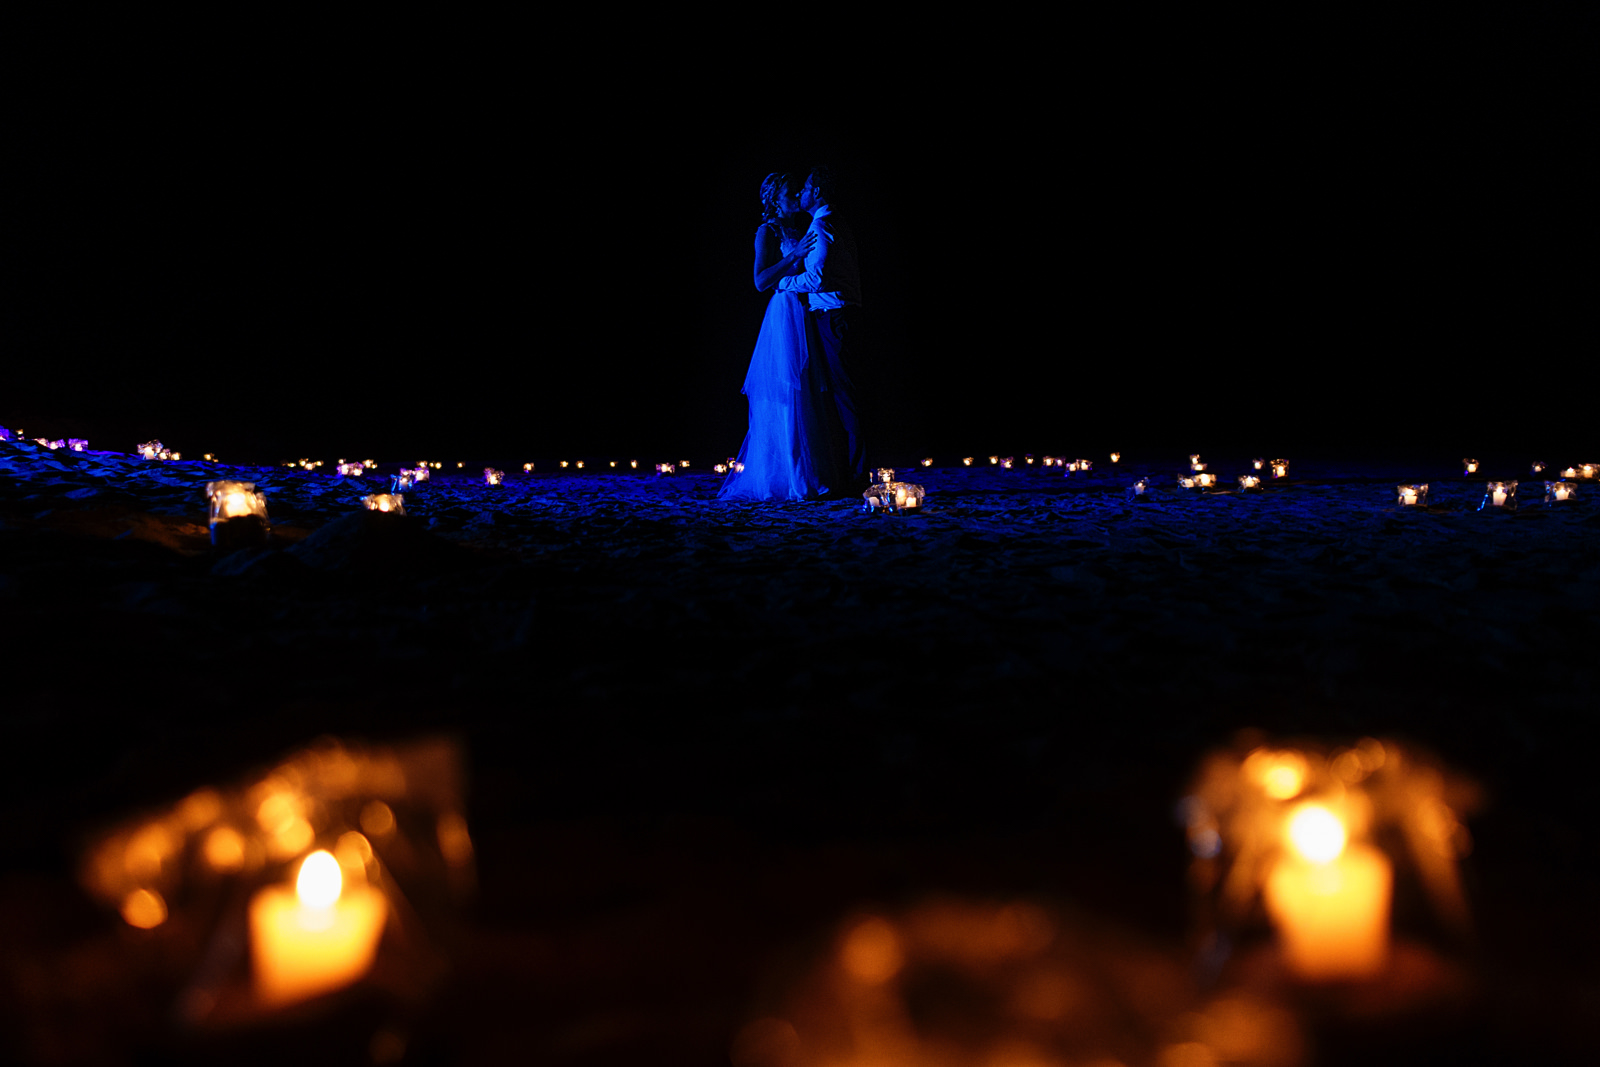 Bride and groom kiss under the blue light against dozens of candle lights